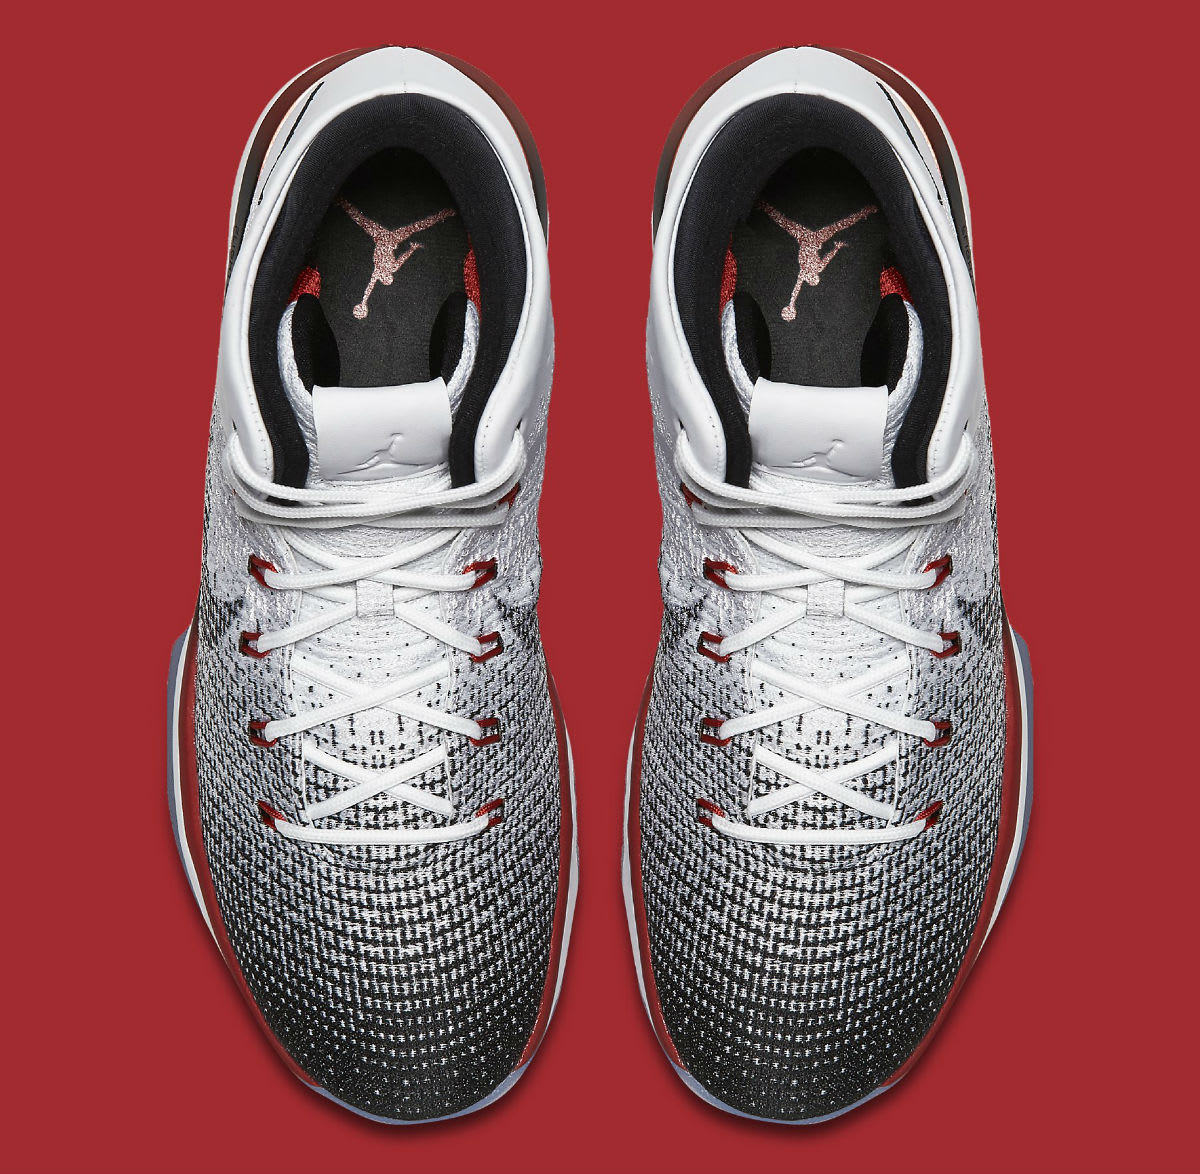 Air Jordan 31 Bulls White Black Red Release Date Top 845037-108